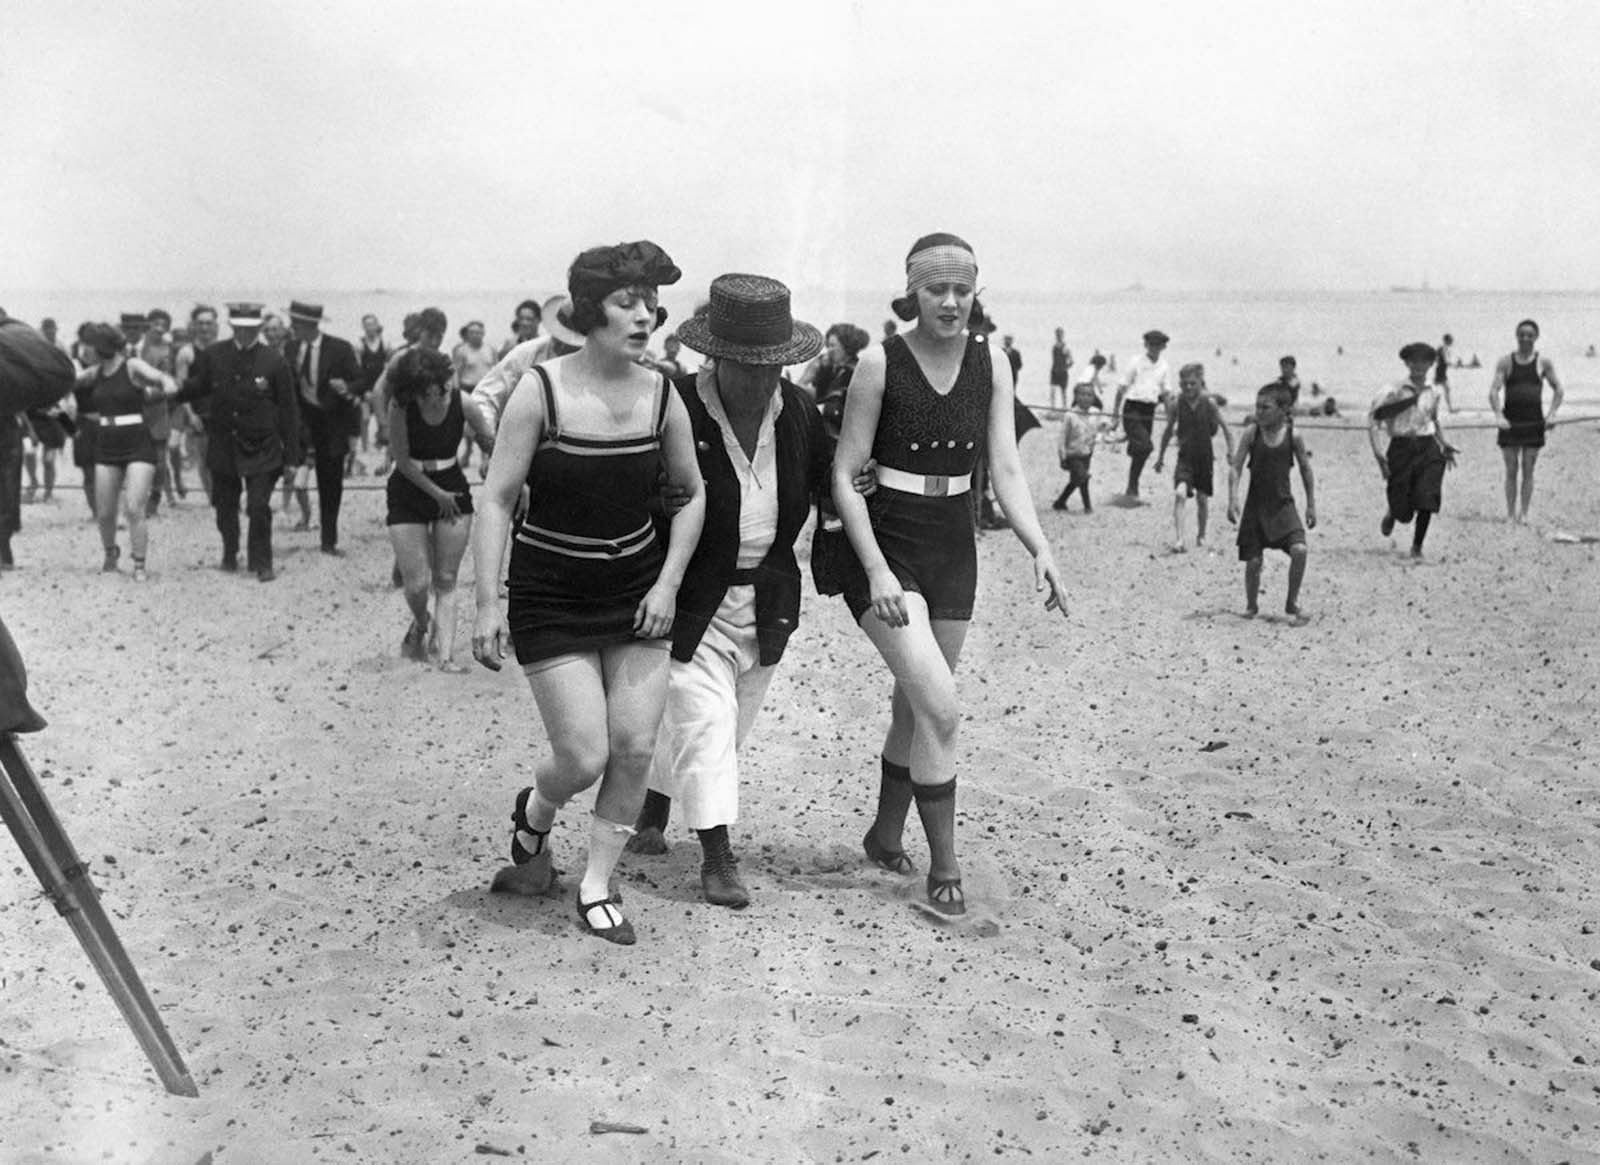 Two bathers being escorted off the beach by a police woman. Chicago, 1922.